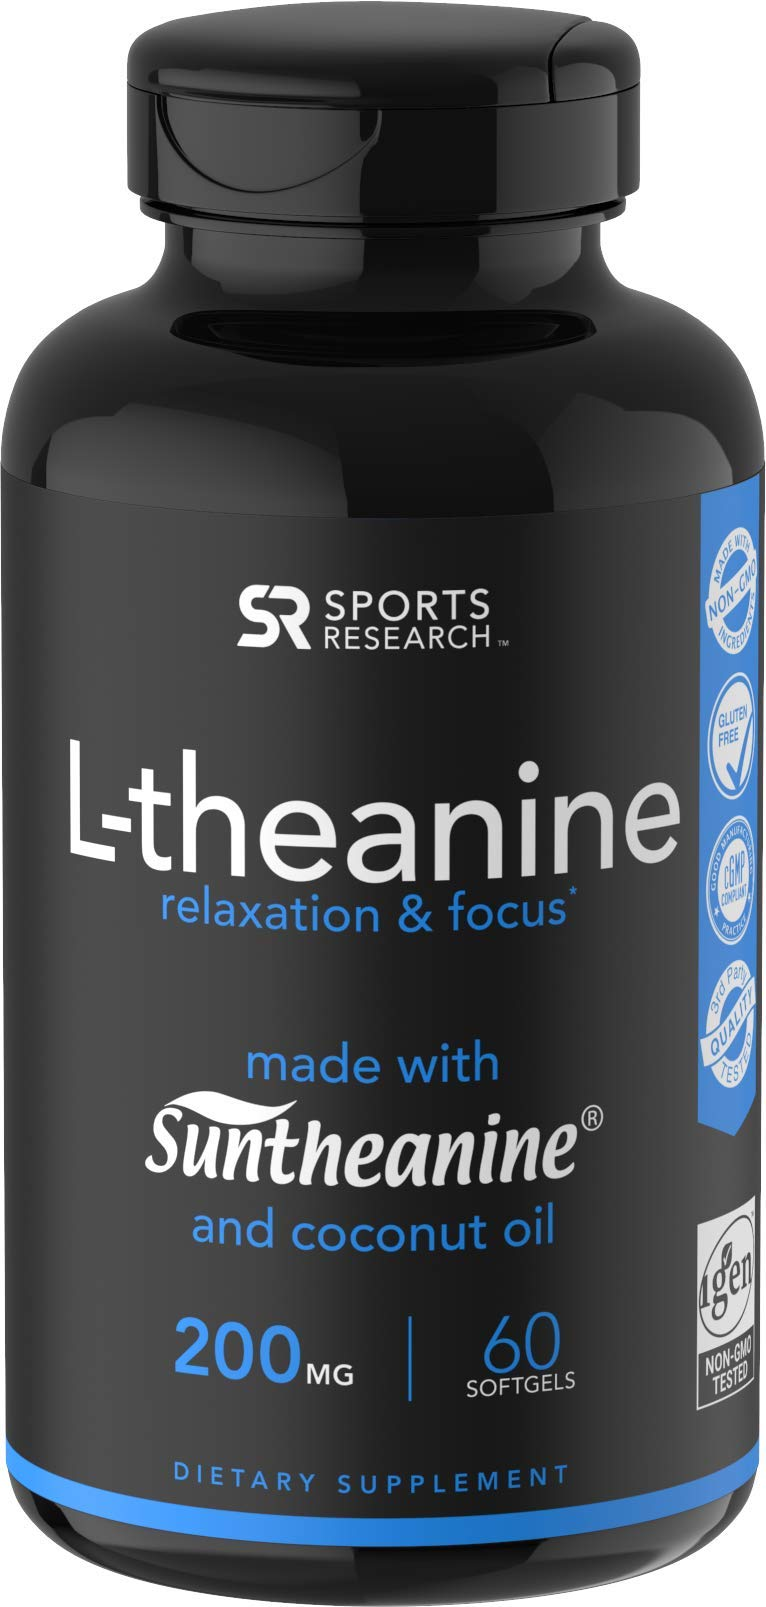 Suntheanine® L-Theanine 200mg (Double-Strength) in Cold-Pressed Organic Coconut Oil; Non-GMO & Gluten Free - 60 Liquid Softgels by Sports Research